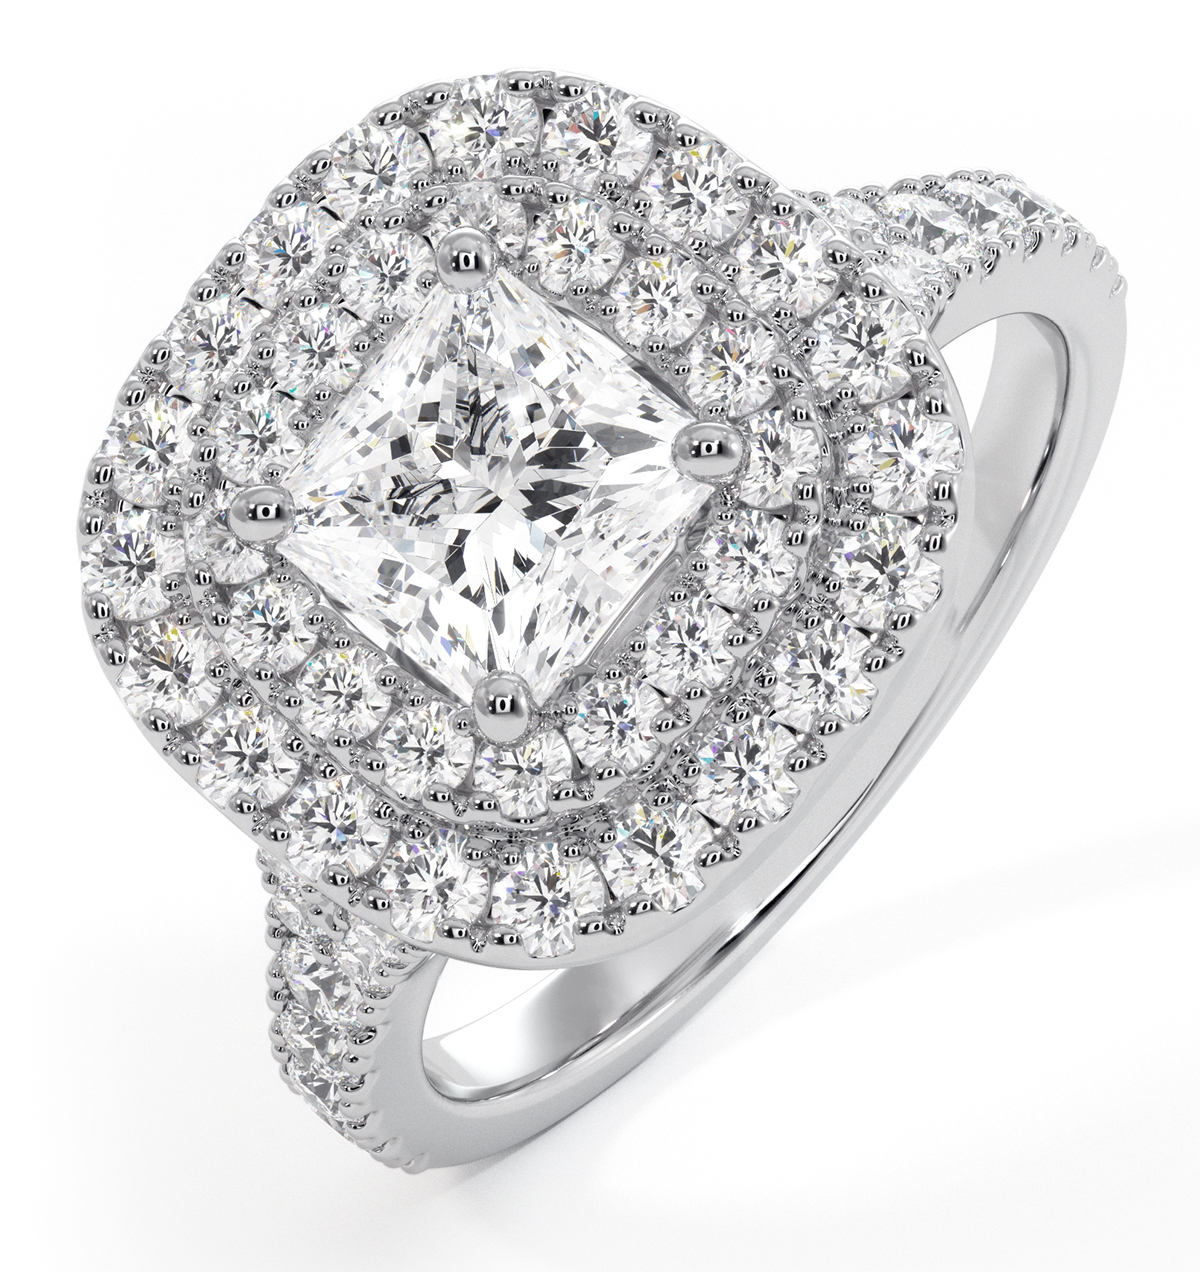 Cleopatra GIA Diamond Halo Engagement Ring in Platinum 1.70ct G/SI1 - image 1